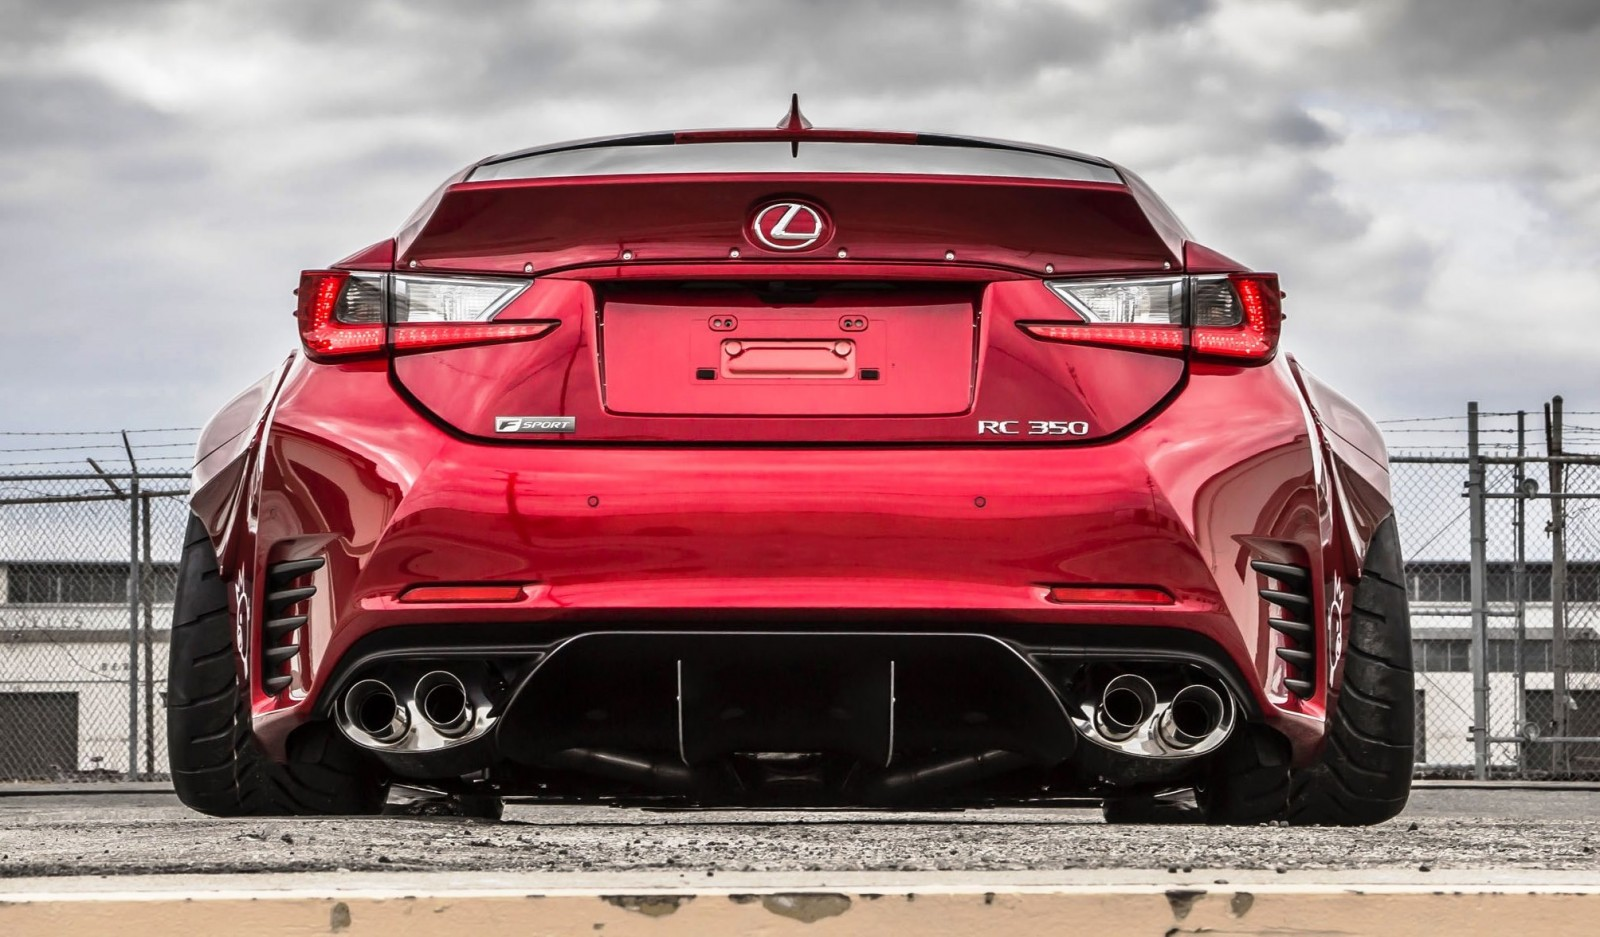 2015 Lexus RC350 F Sport Rocketbunny Widebody  7